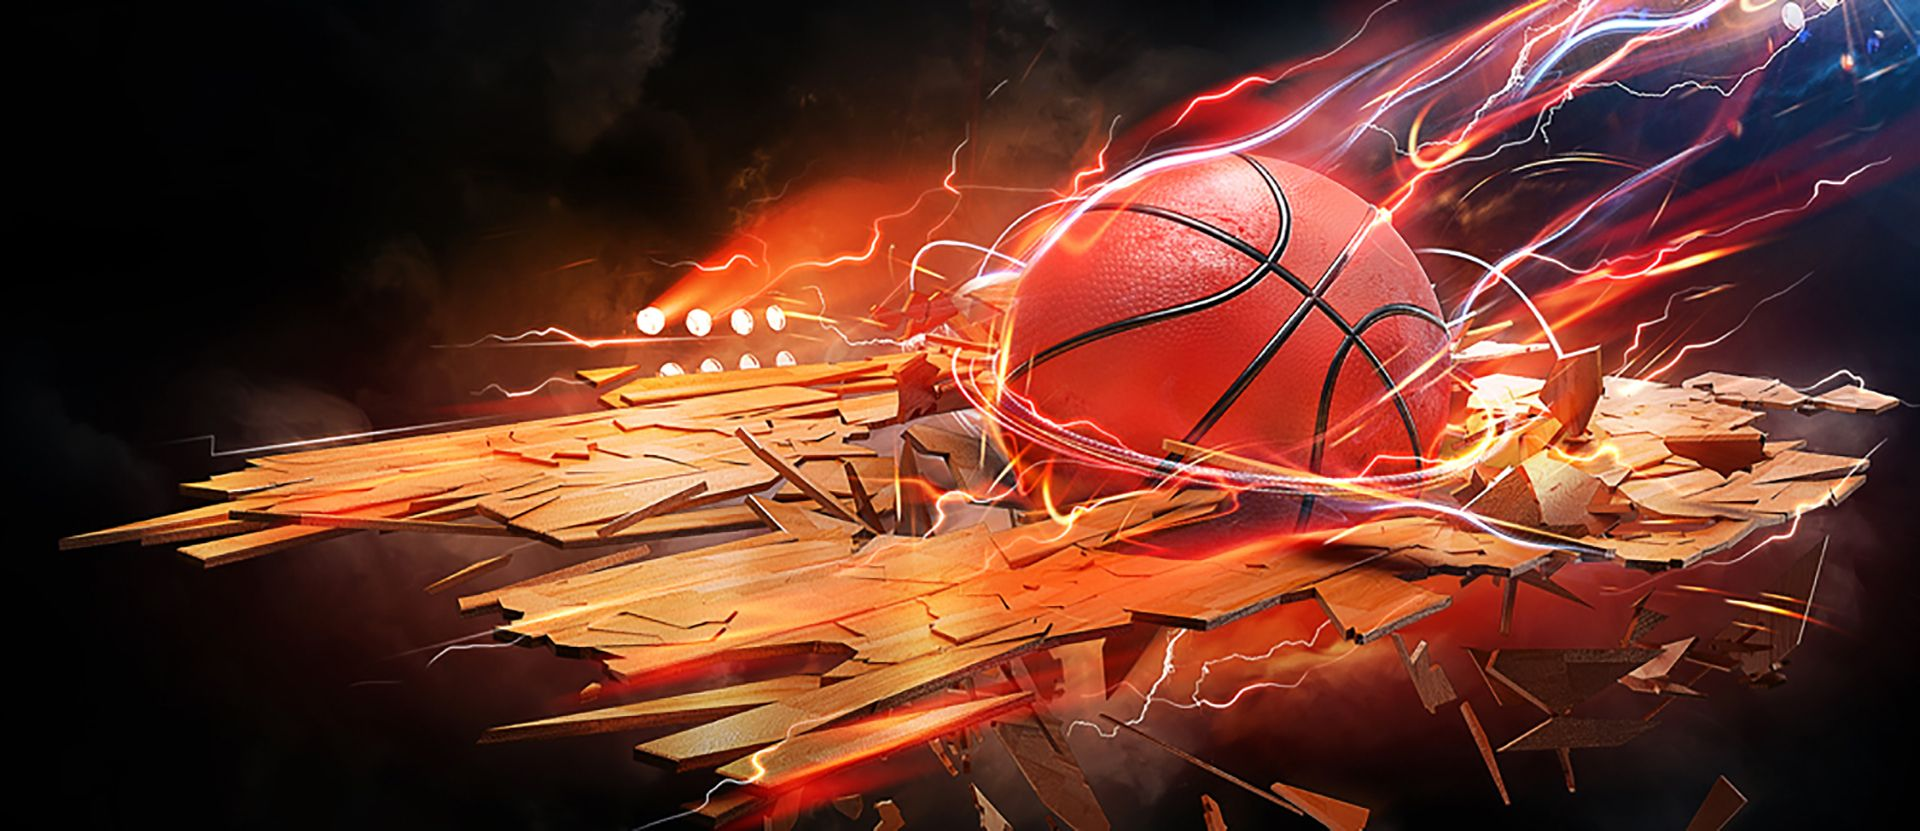 Basketball Background Banner Decoration Cool Basketball Wallpapers Basketball Background Basketball Wallpaper